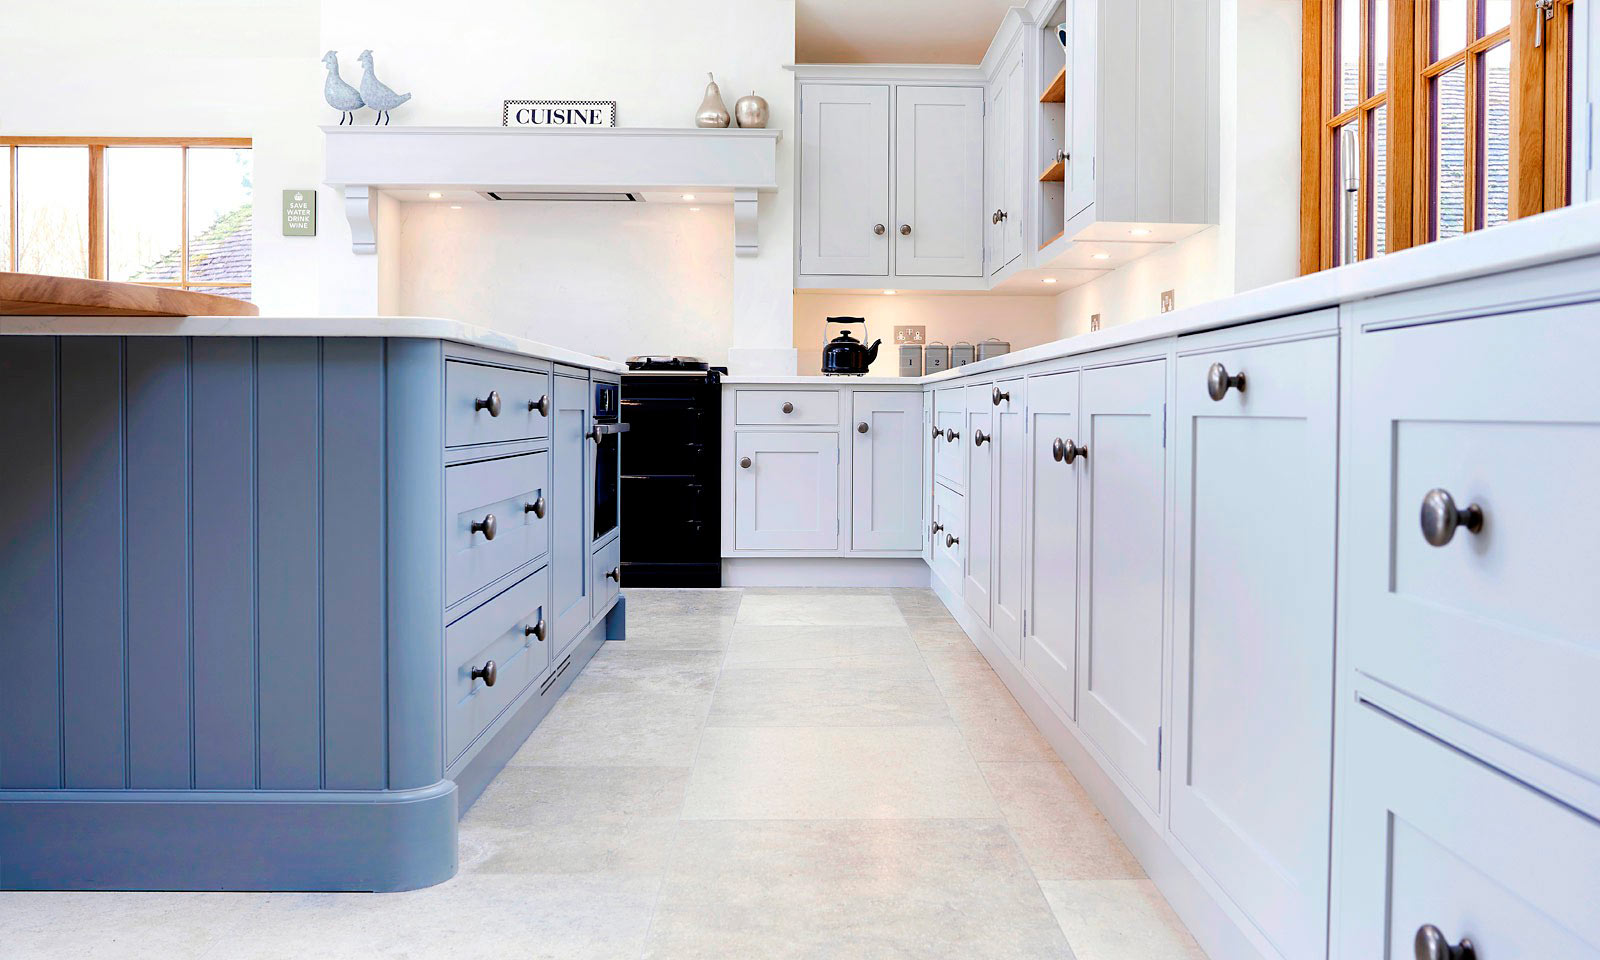 Biddenden. A classic handmade, hand-painted, Shaker style kitchen, installed in a large historic country villa. A bespoke hand-crafted kitchen manufactured by the skilled cabinet makers at Mounts Hill Woodcraft.